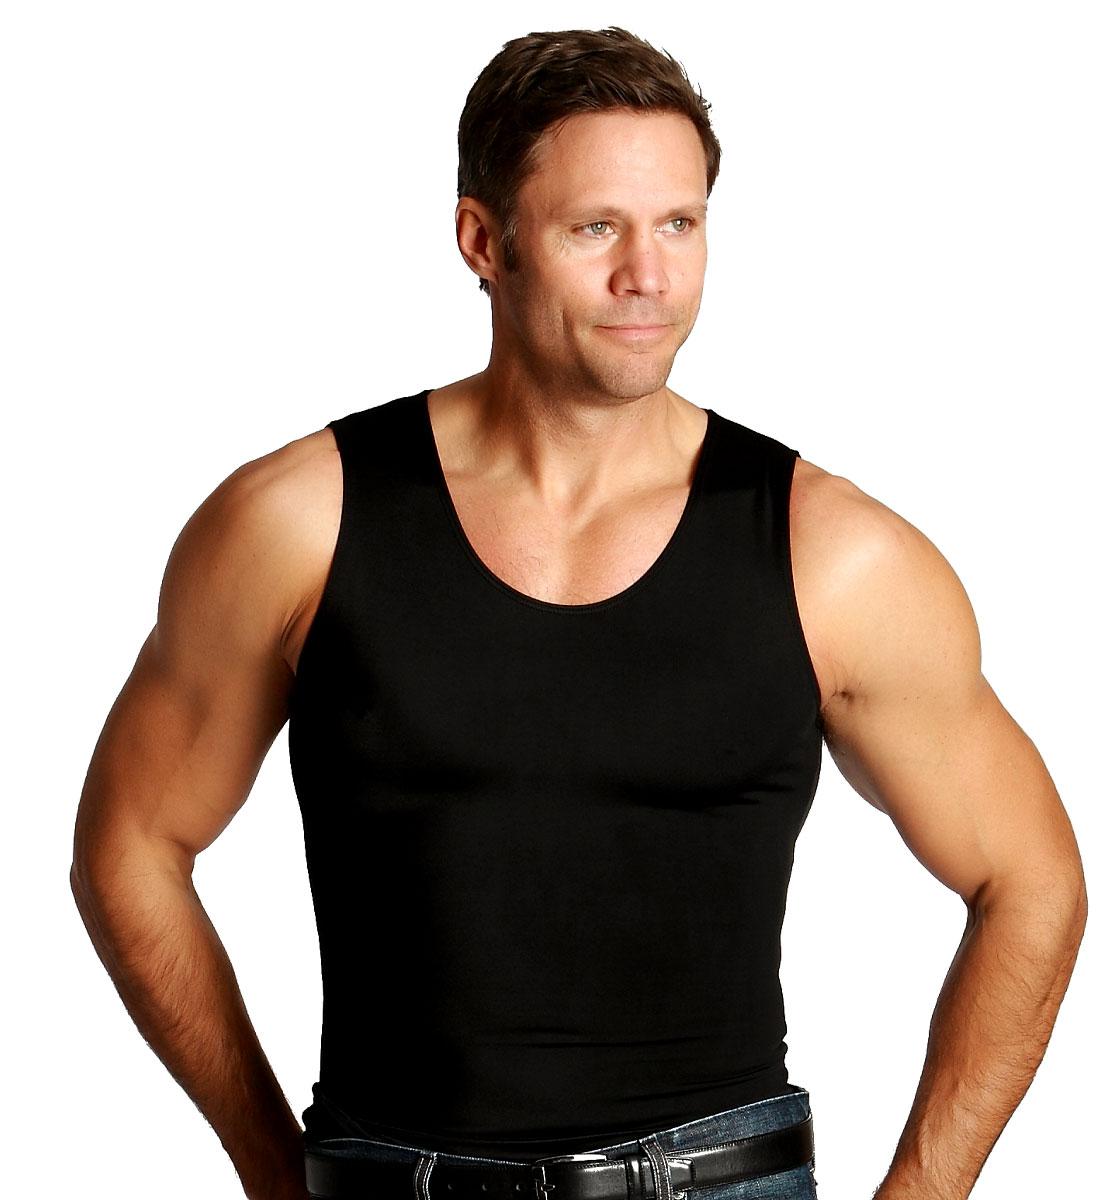 Insta Slim Black Muscle Tank Men's Firming Compression Under Shirt (XXXL Large)